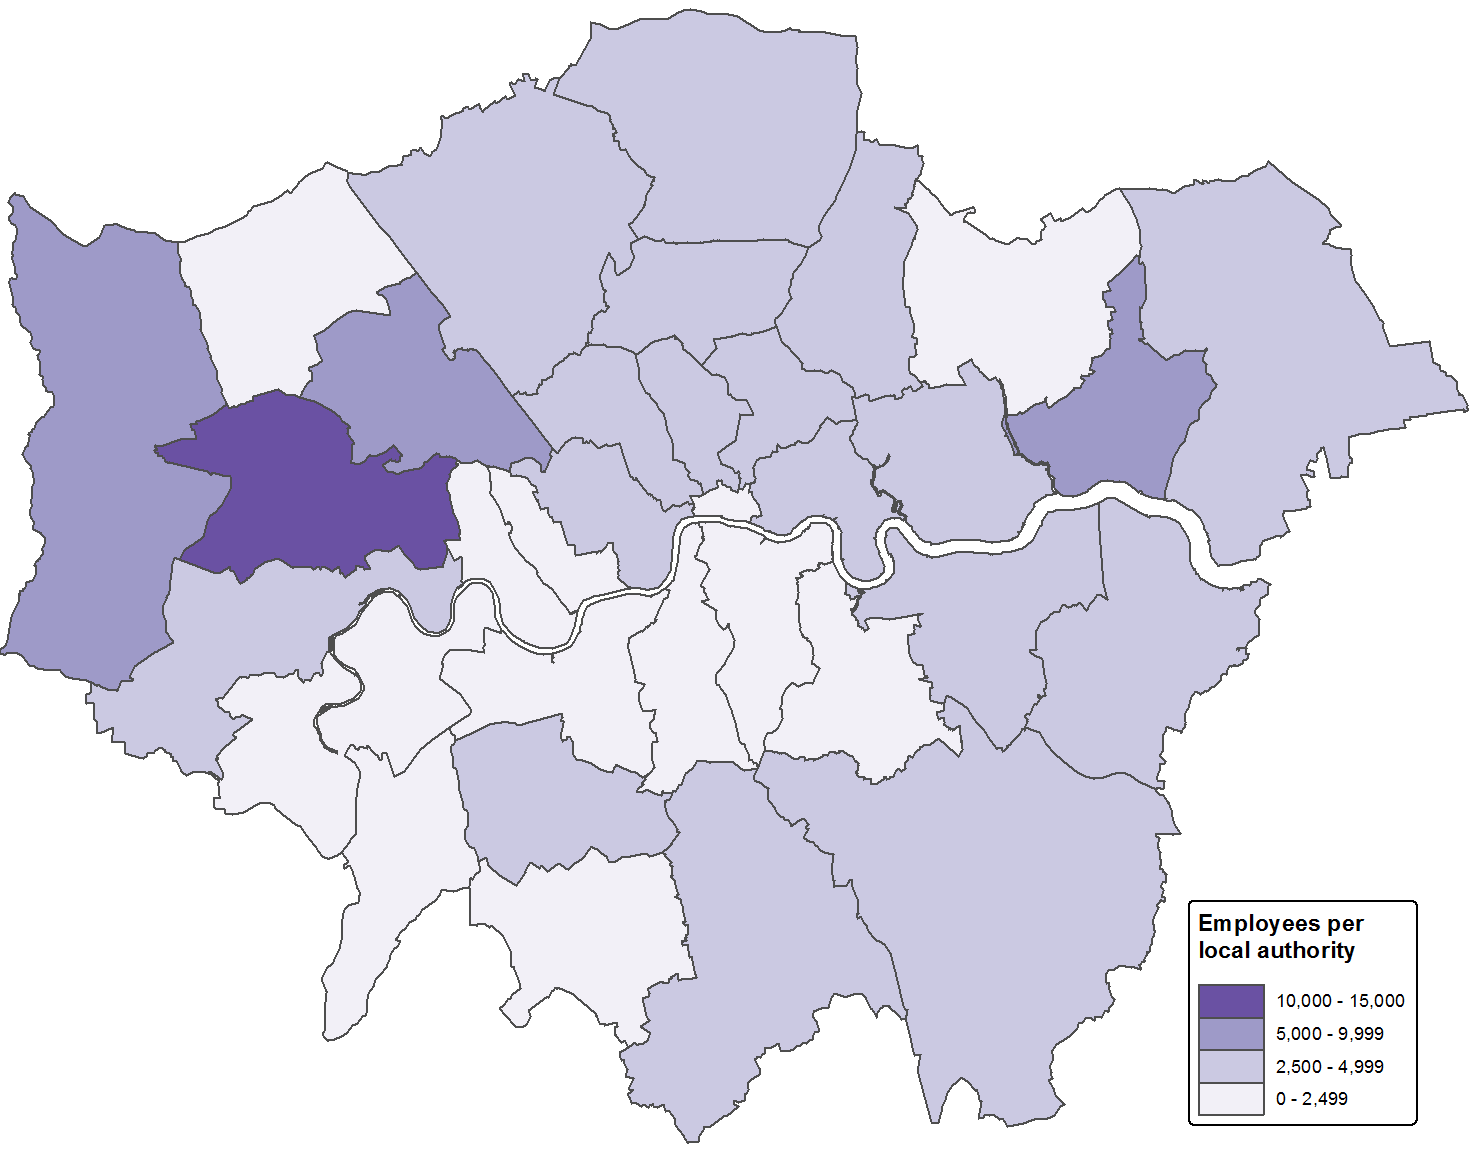 Manufacturing employees are more concentrated in outer London than inner London, moreso in the North than the South, with highest concentrations in the western boroughs Brent, Ealing and Hillingdon.